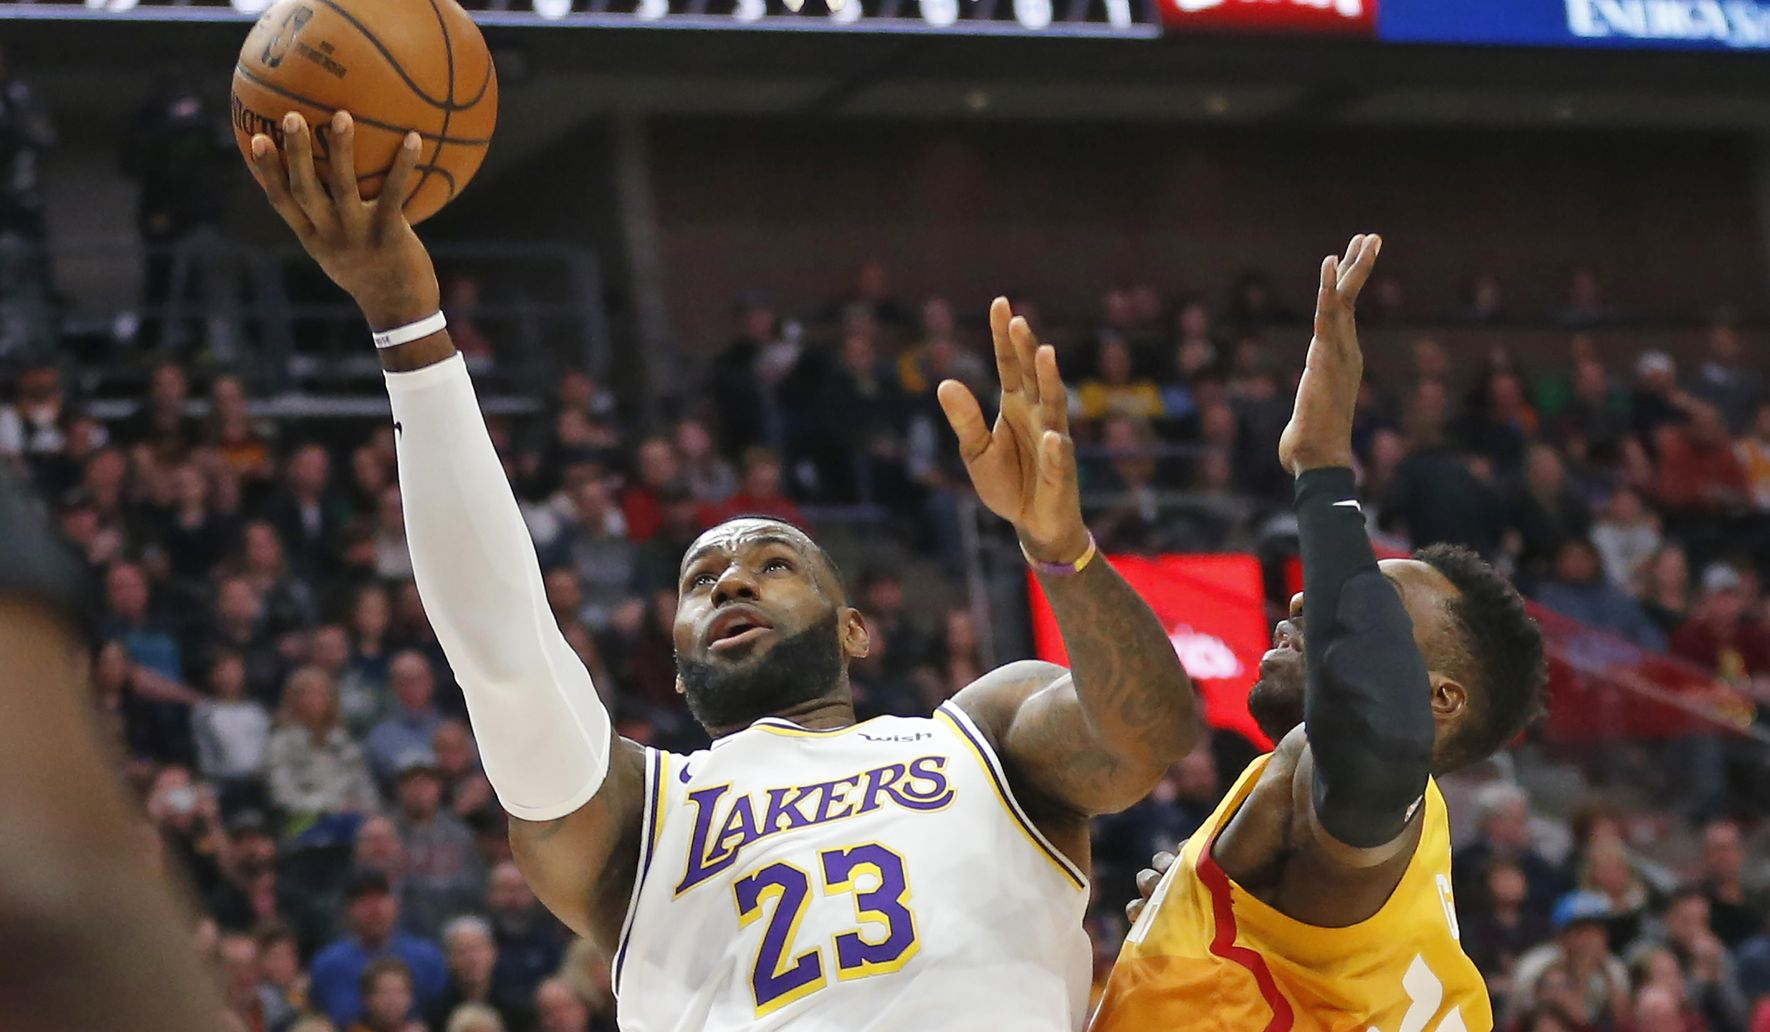 Lakers_jazz_basketball_18145_c0-226-5400-3374_s1770x1032